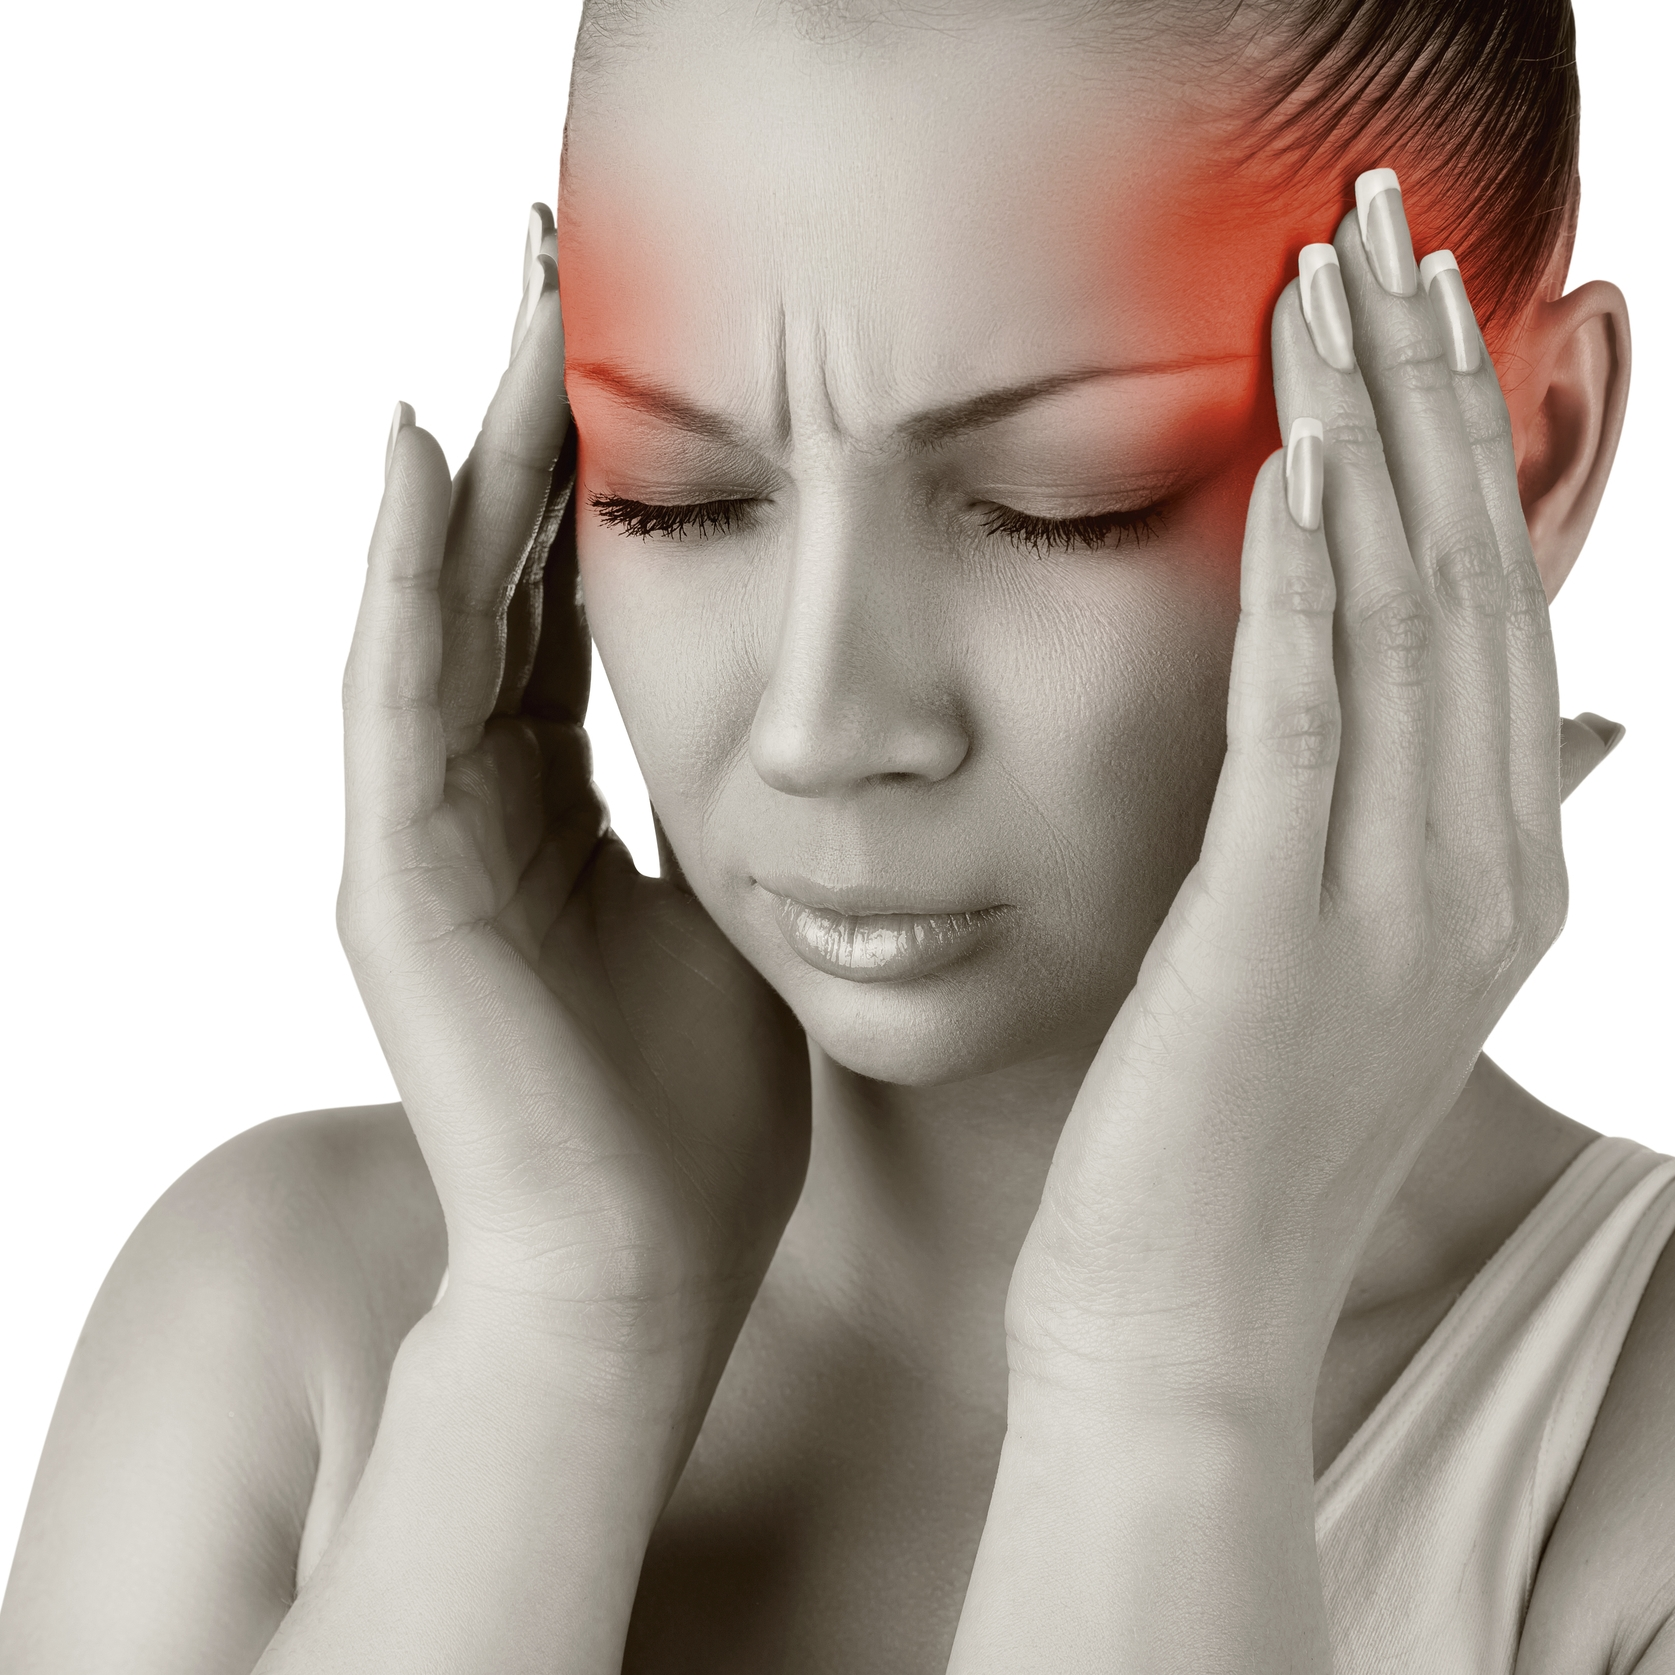 Migranes & tension headaches